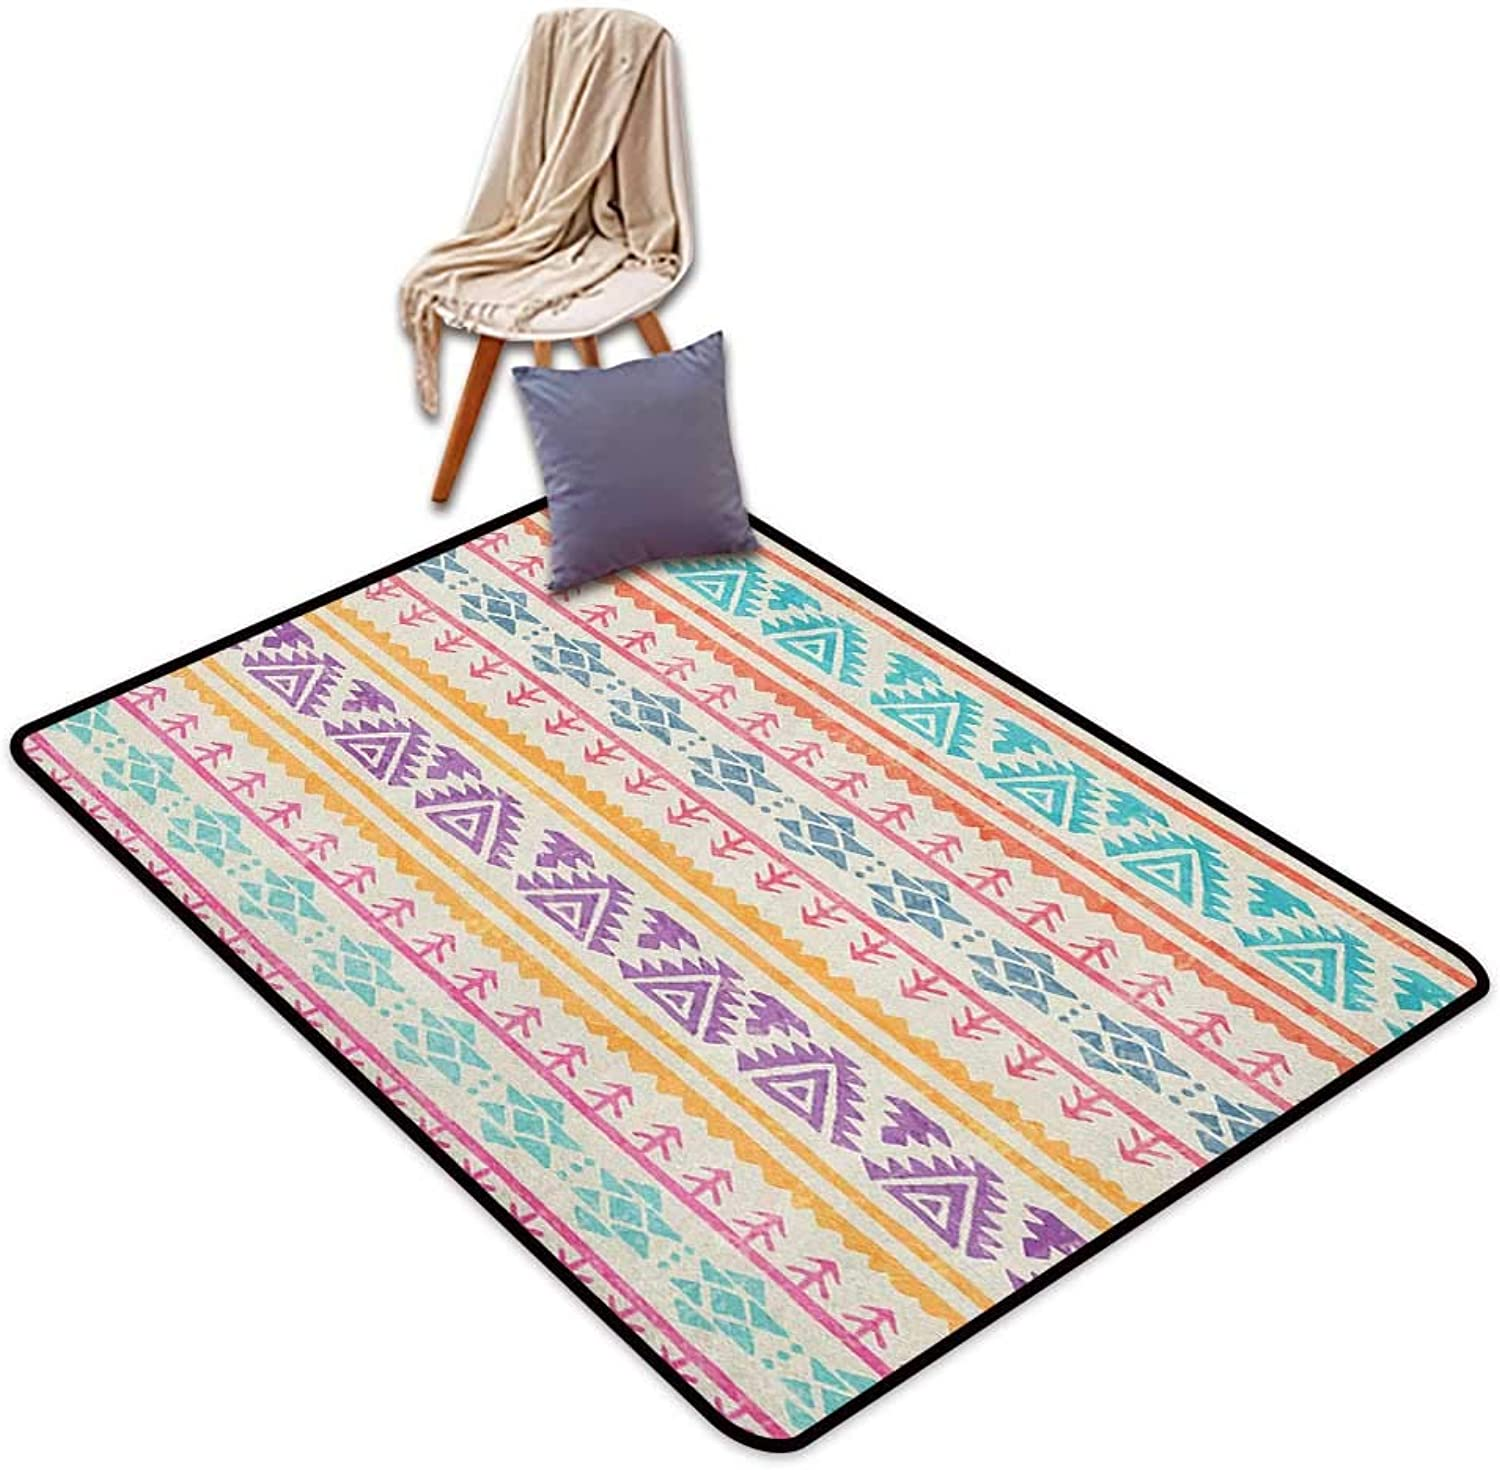 Interior Door Rug Bathroom Rug Slip orange and Pink Hand Drawn Ethnic Design with Timeless Tribal Triangle and Arrow Motifs Inner Door Rug W5'xL7'